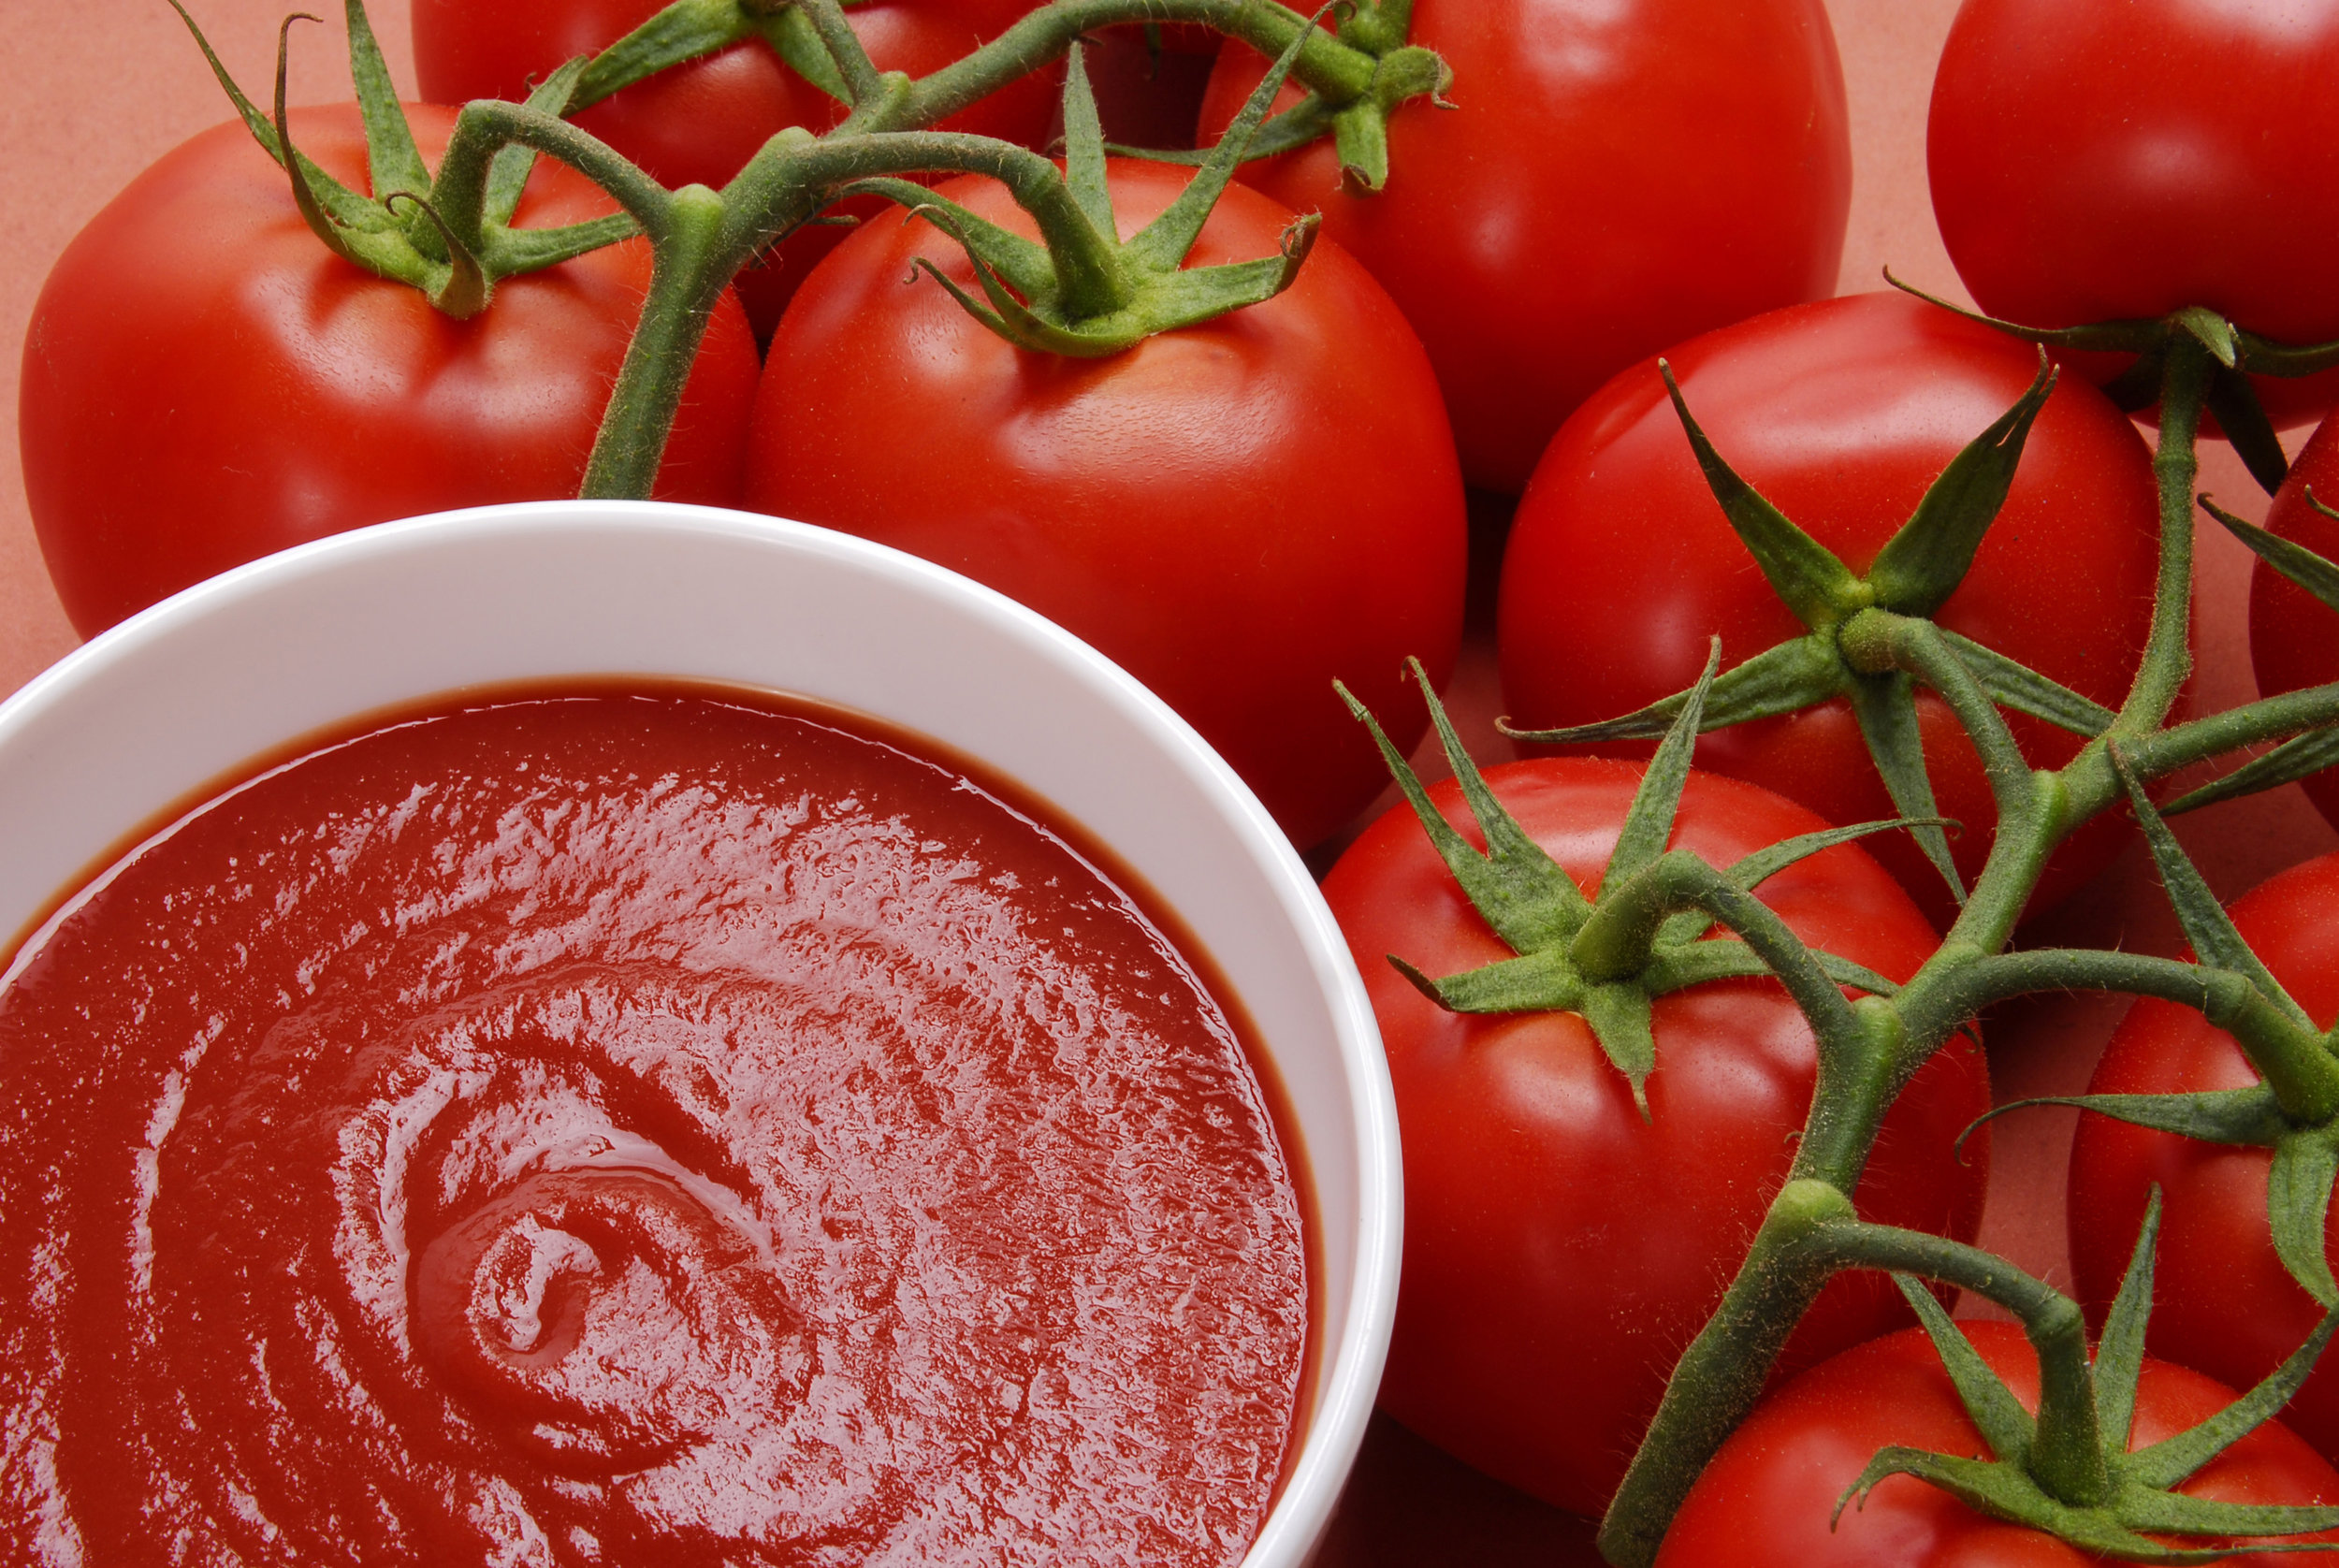 The Jersey Tomato Co. sauces are made with 100% New Jersey tomatoes.